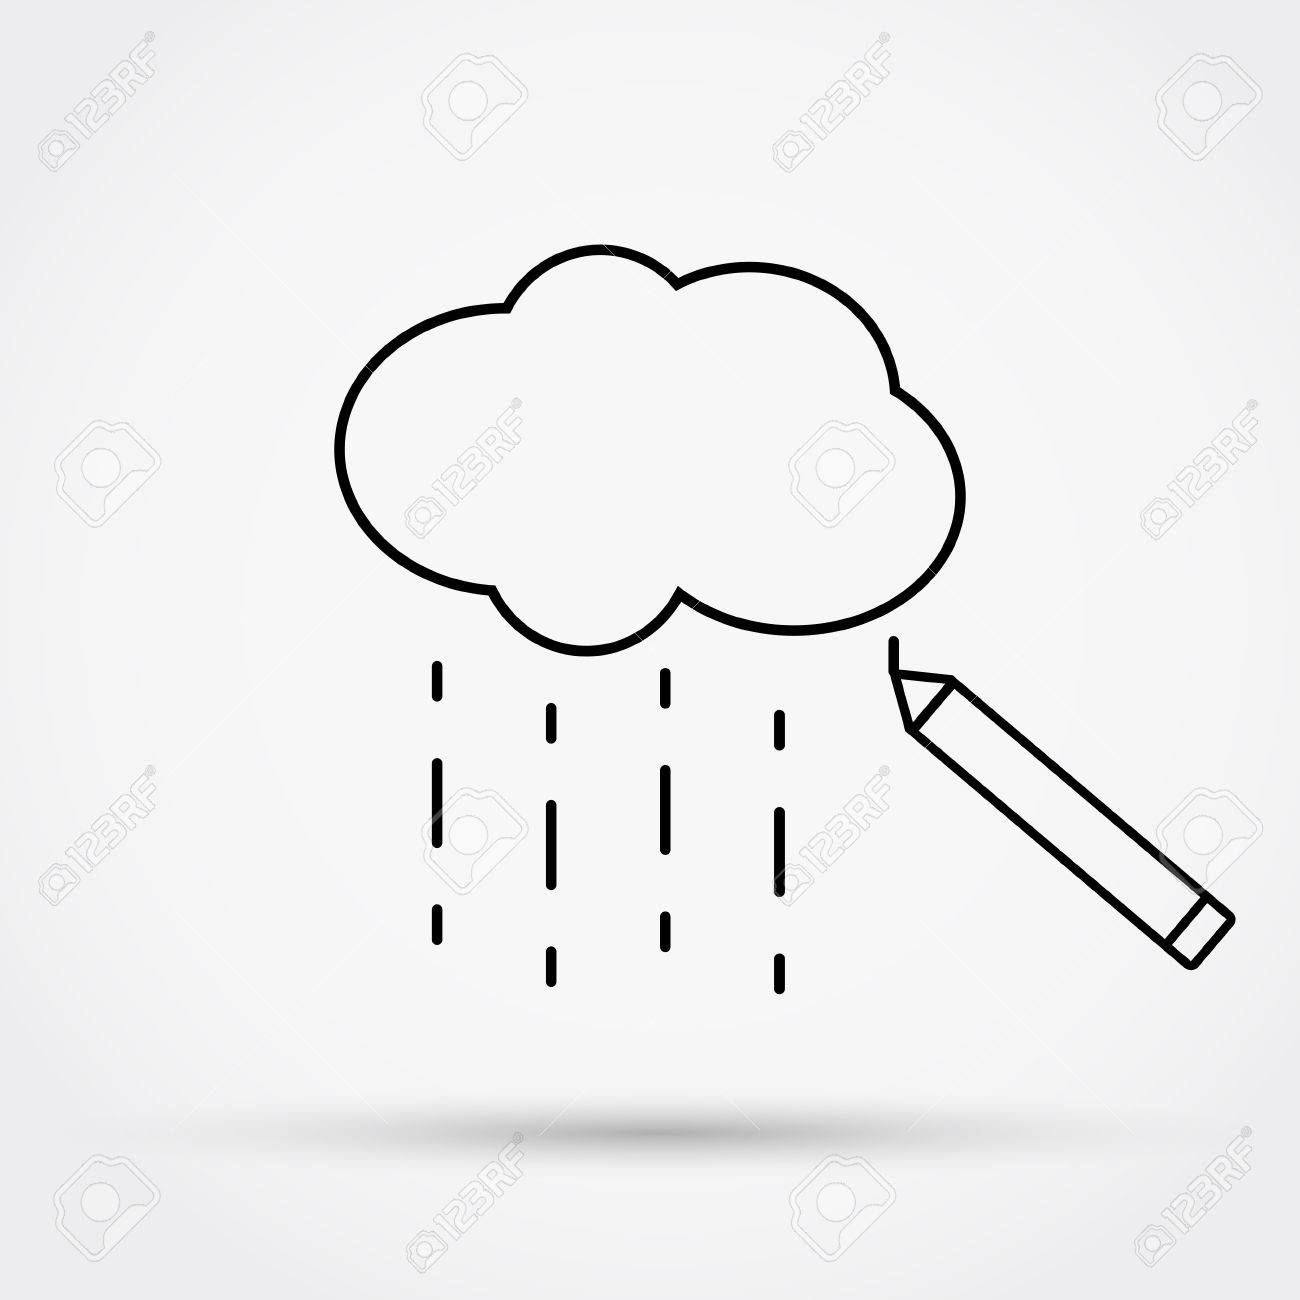 hight resolution of 1300x1300 pencil drawing cloud with rain outline simple flat icon vector